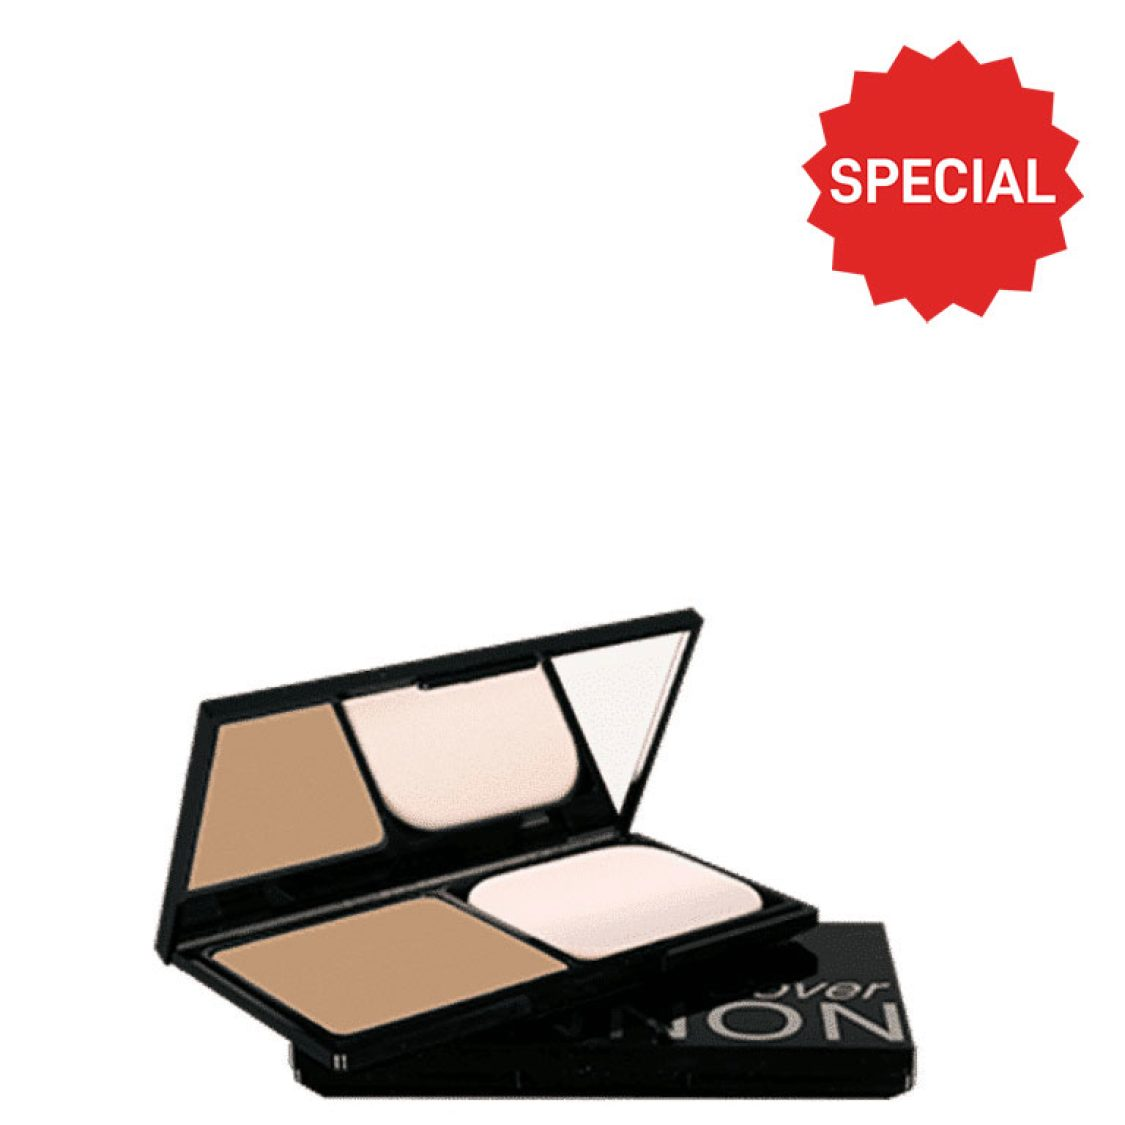 Hannon - Two in One Foundation No.8